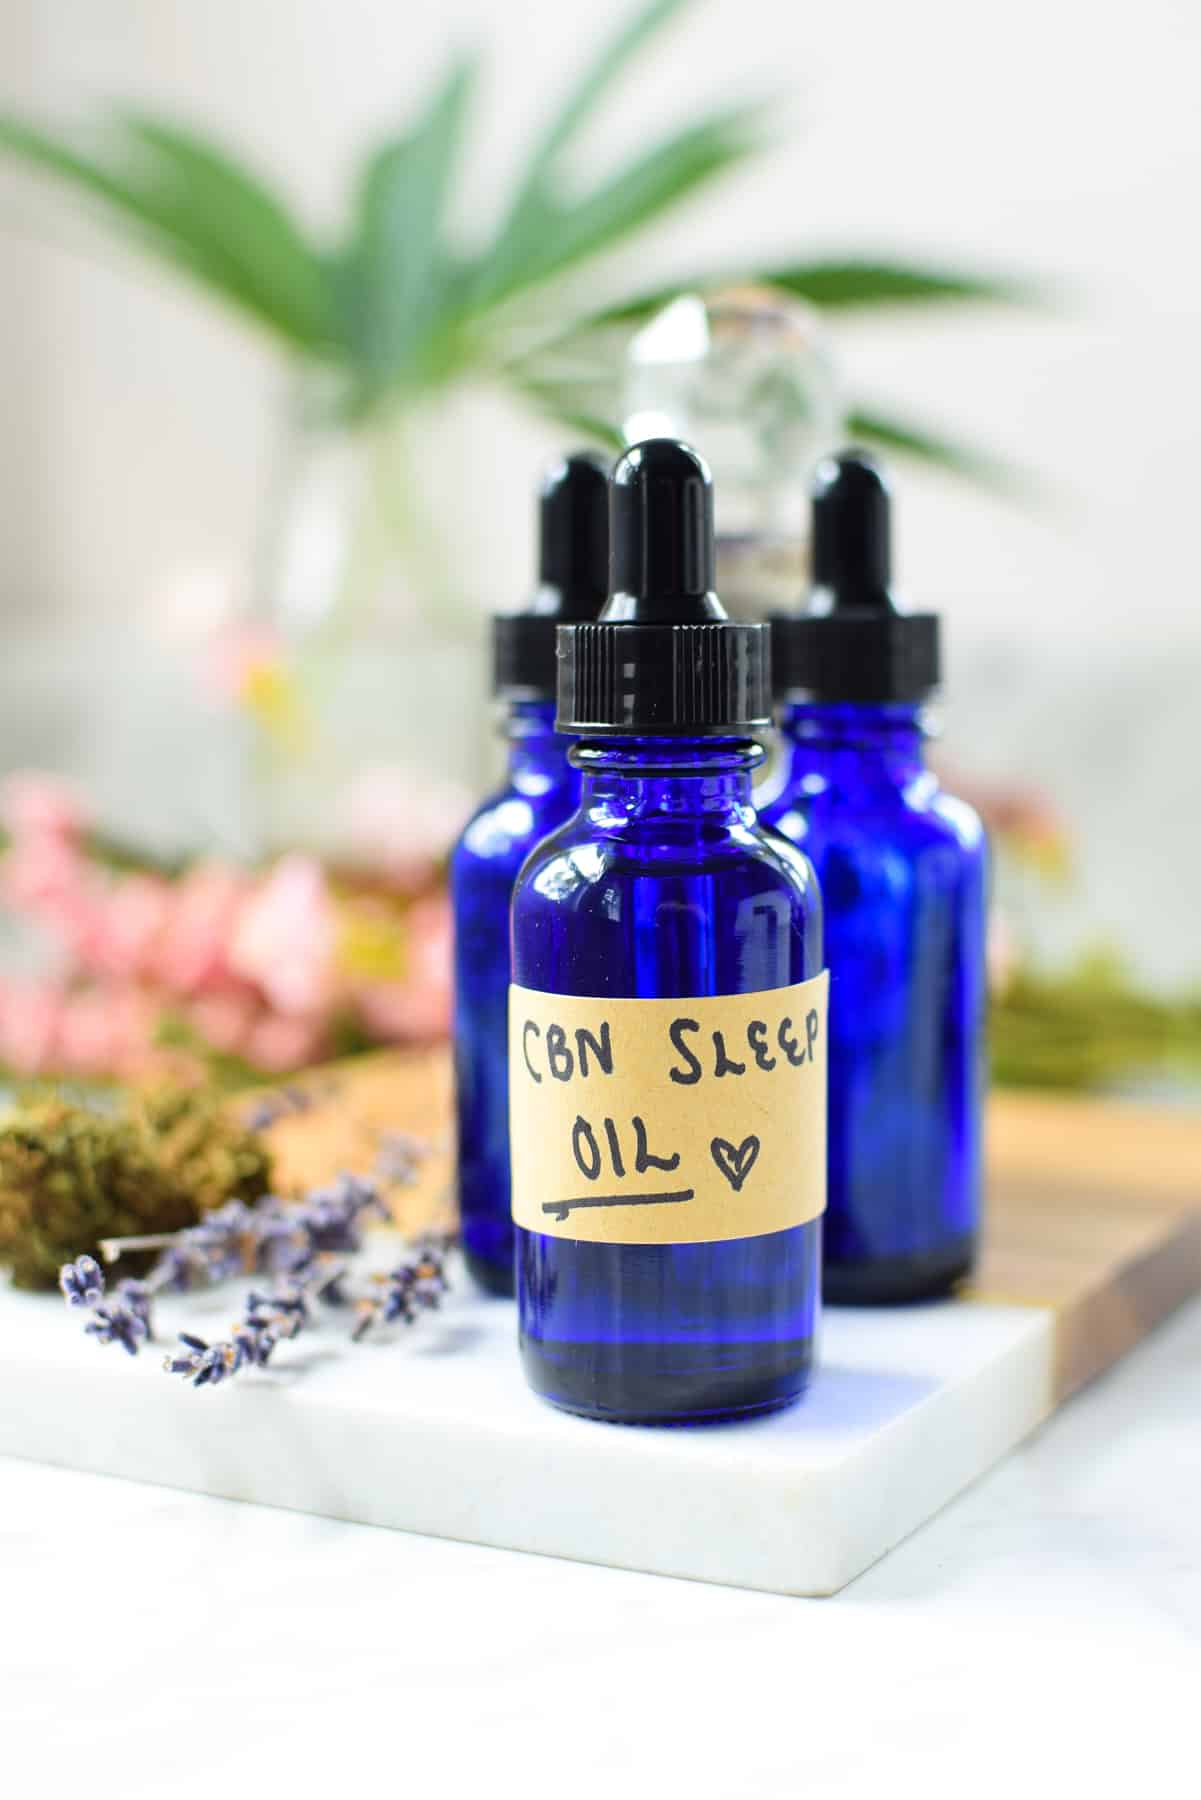 A finished blue bottle of homemade CBN Sleep Oil